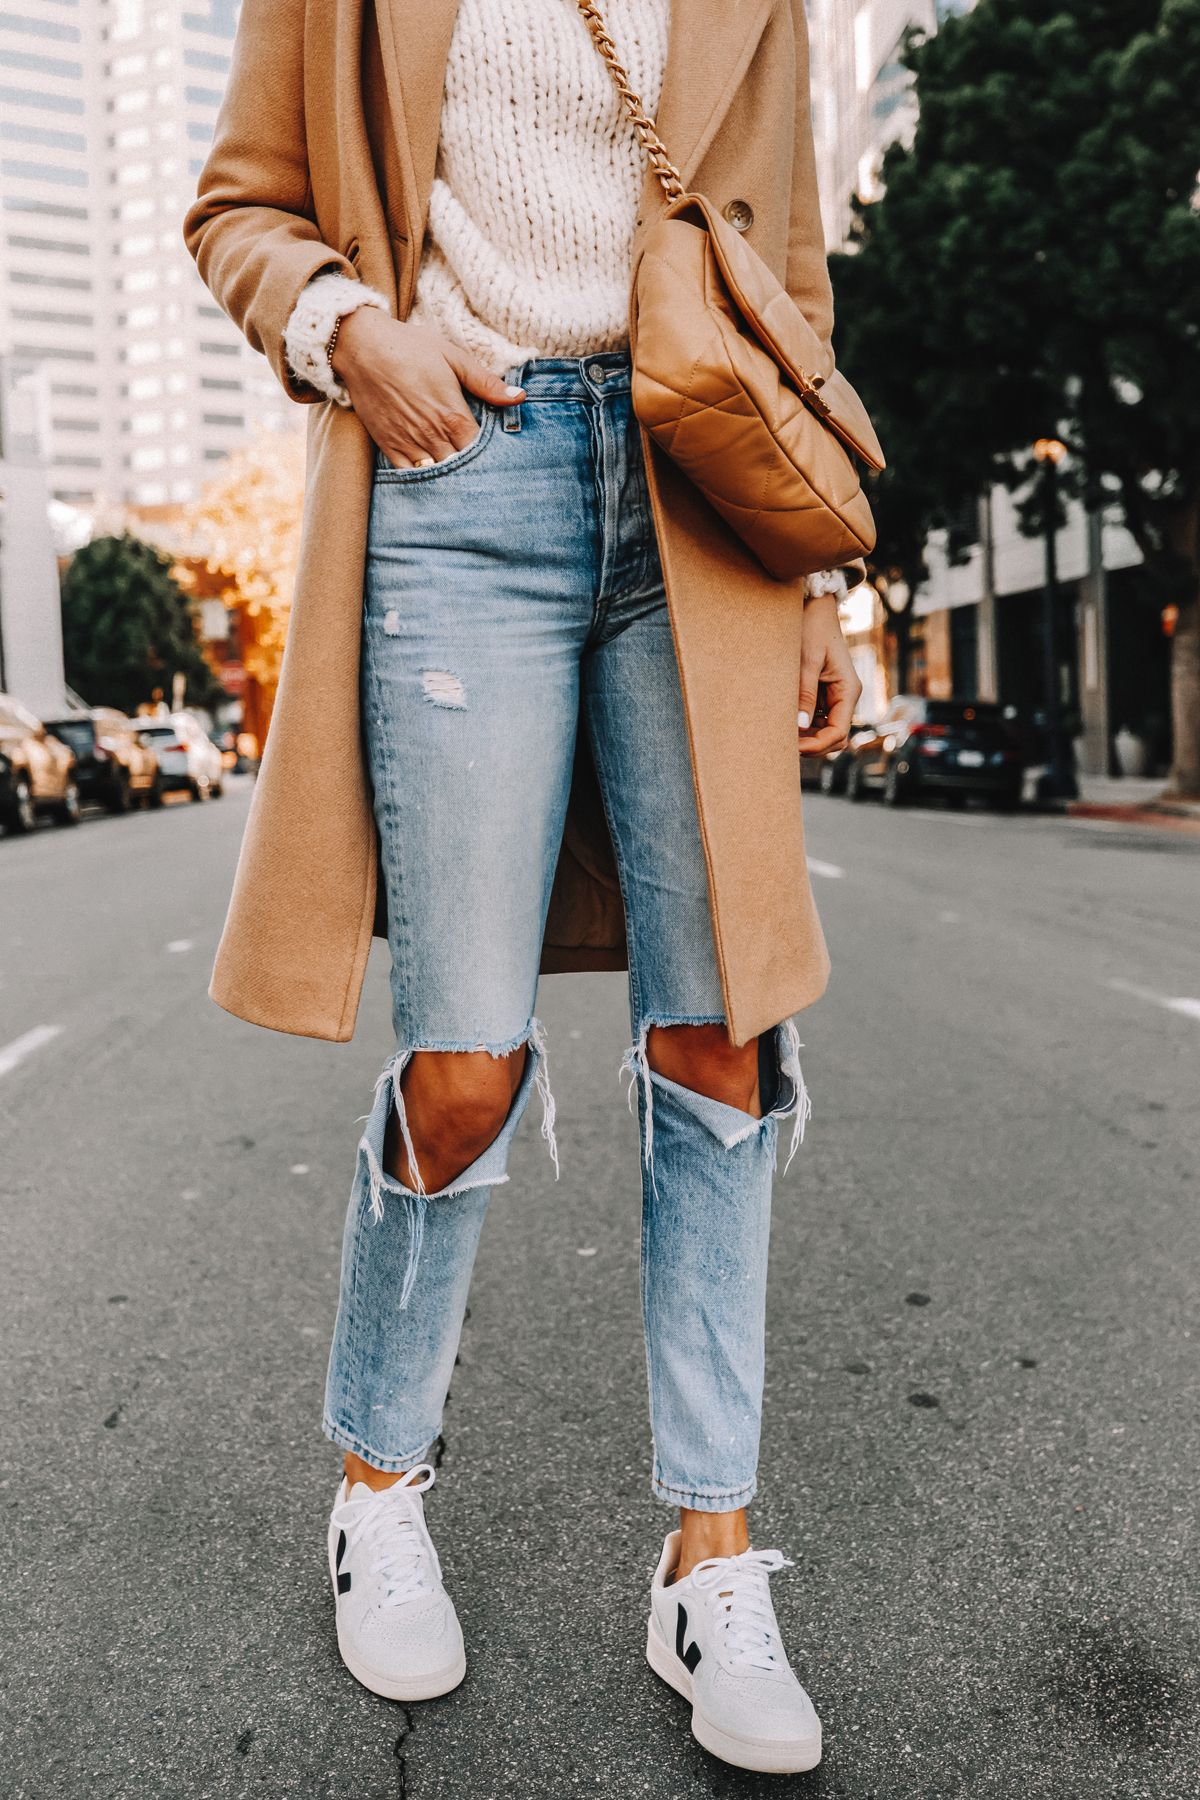 2020 New Women Jeans Plus Size Clothing Sale Casual 1920S Fashion Ladies Ski Jacket Underwire Swimsuits